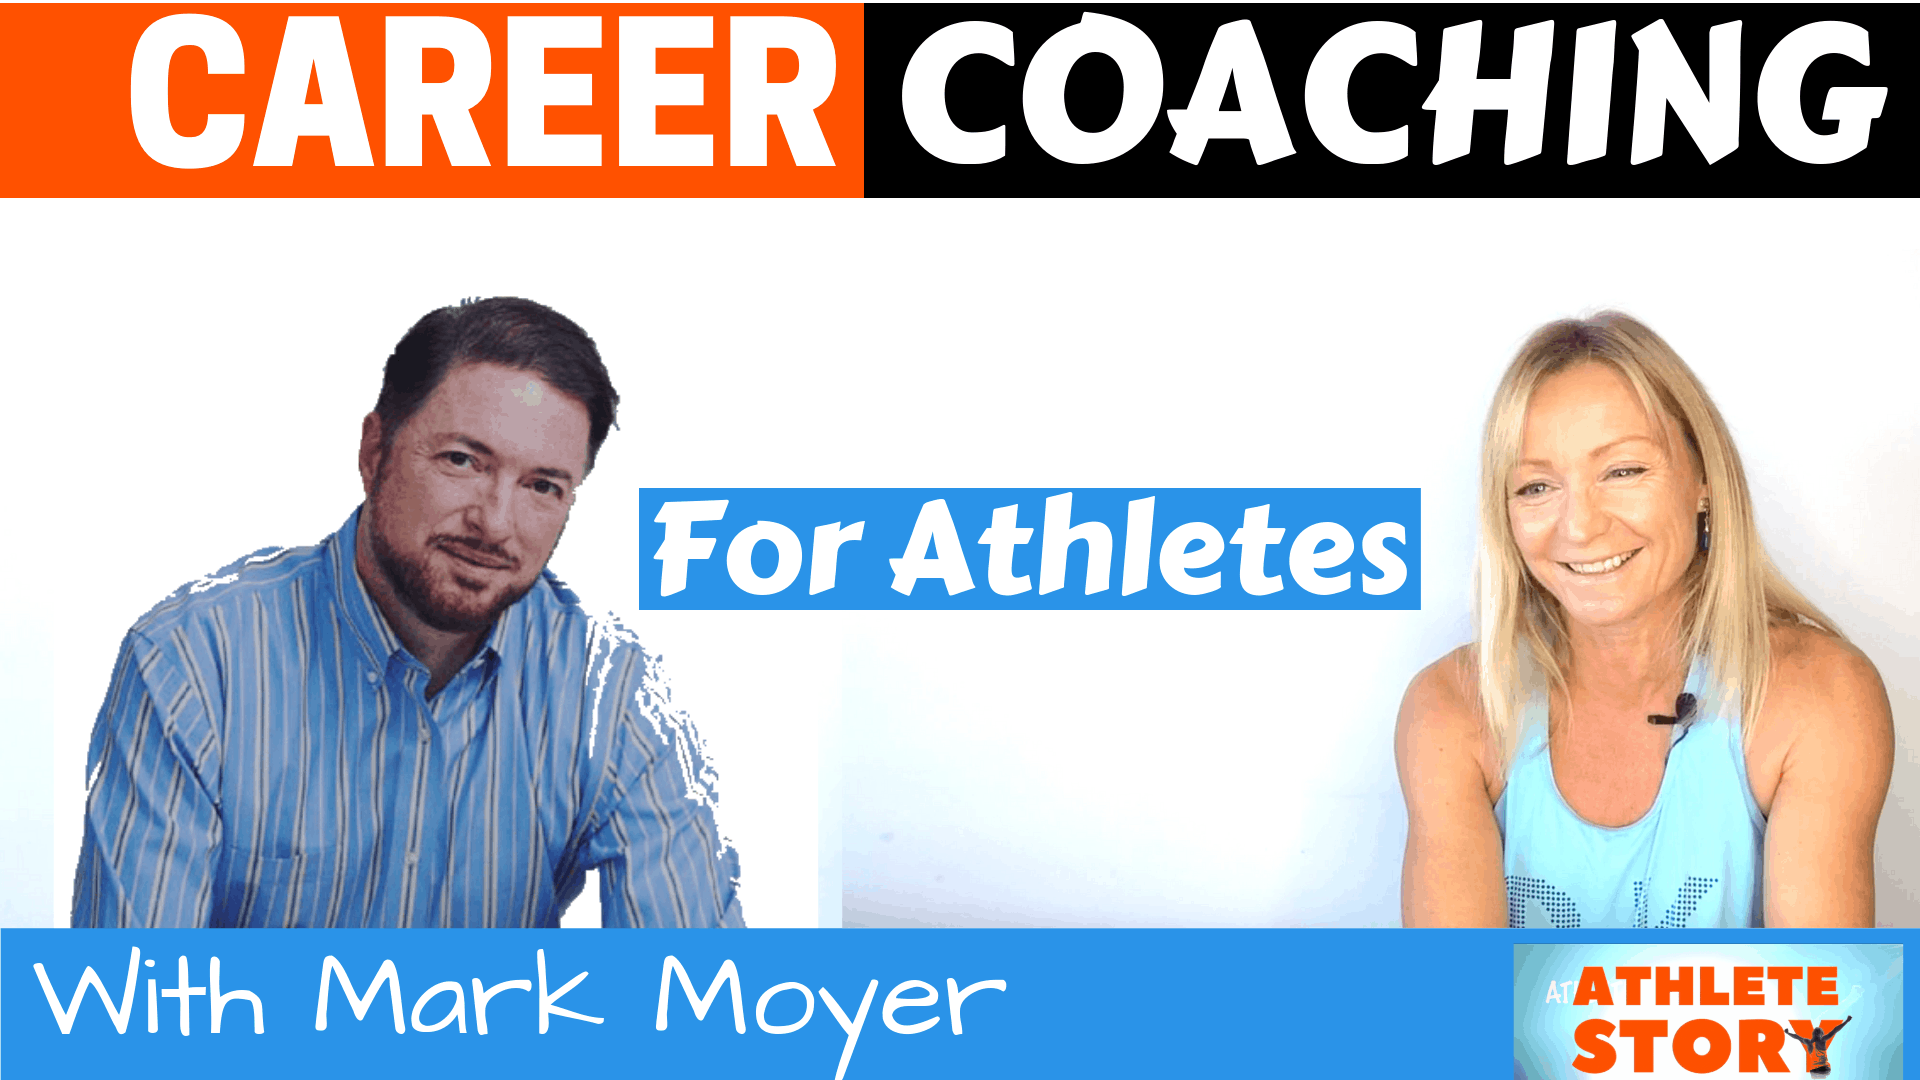 Career Coaching for athletes cover photo Mark Moyer.png